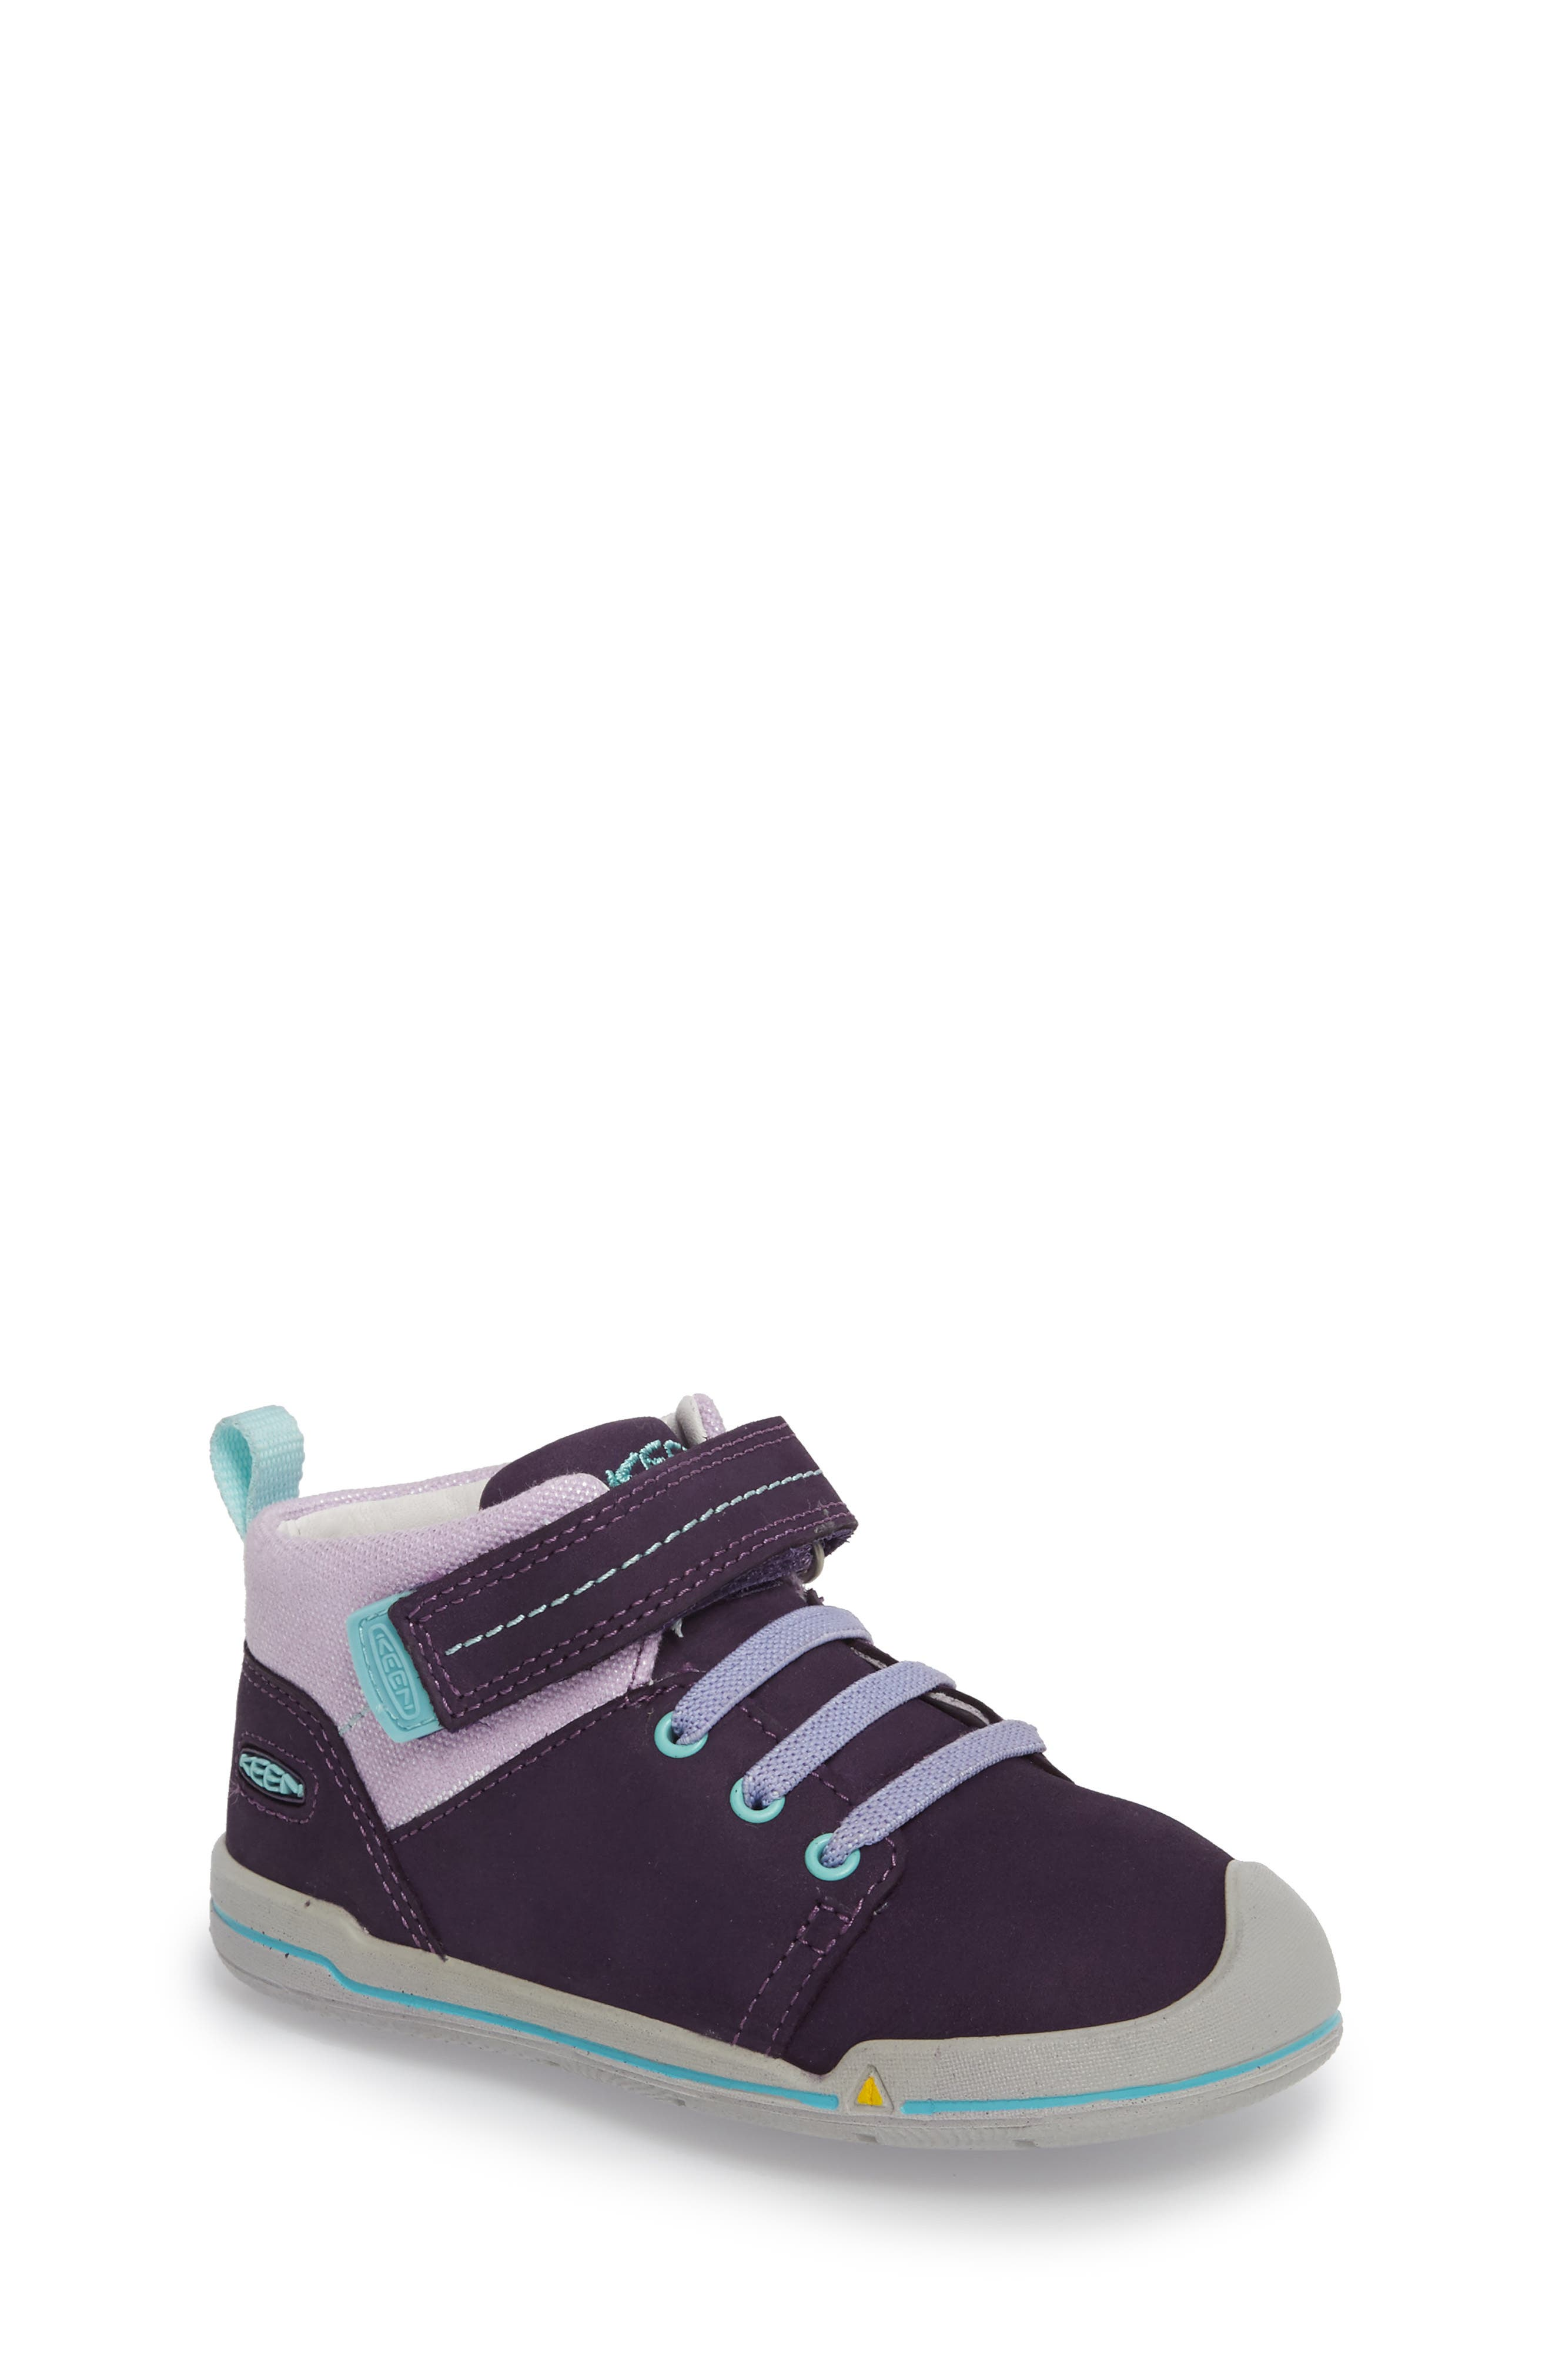 Sprout Mid Sneaker,                             Main thumbnail 1, color,                             Purple / Sweet Lavender